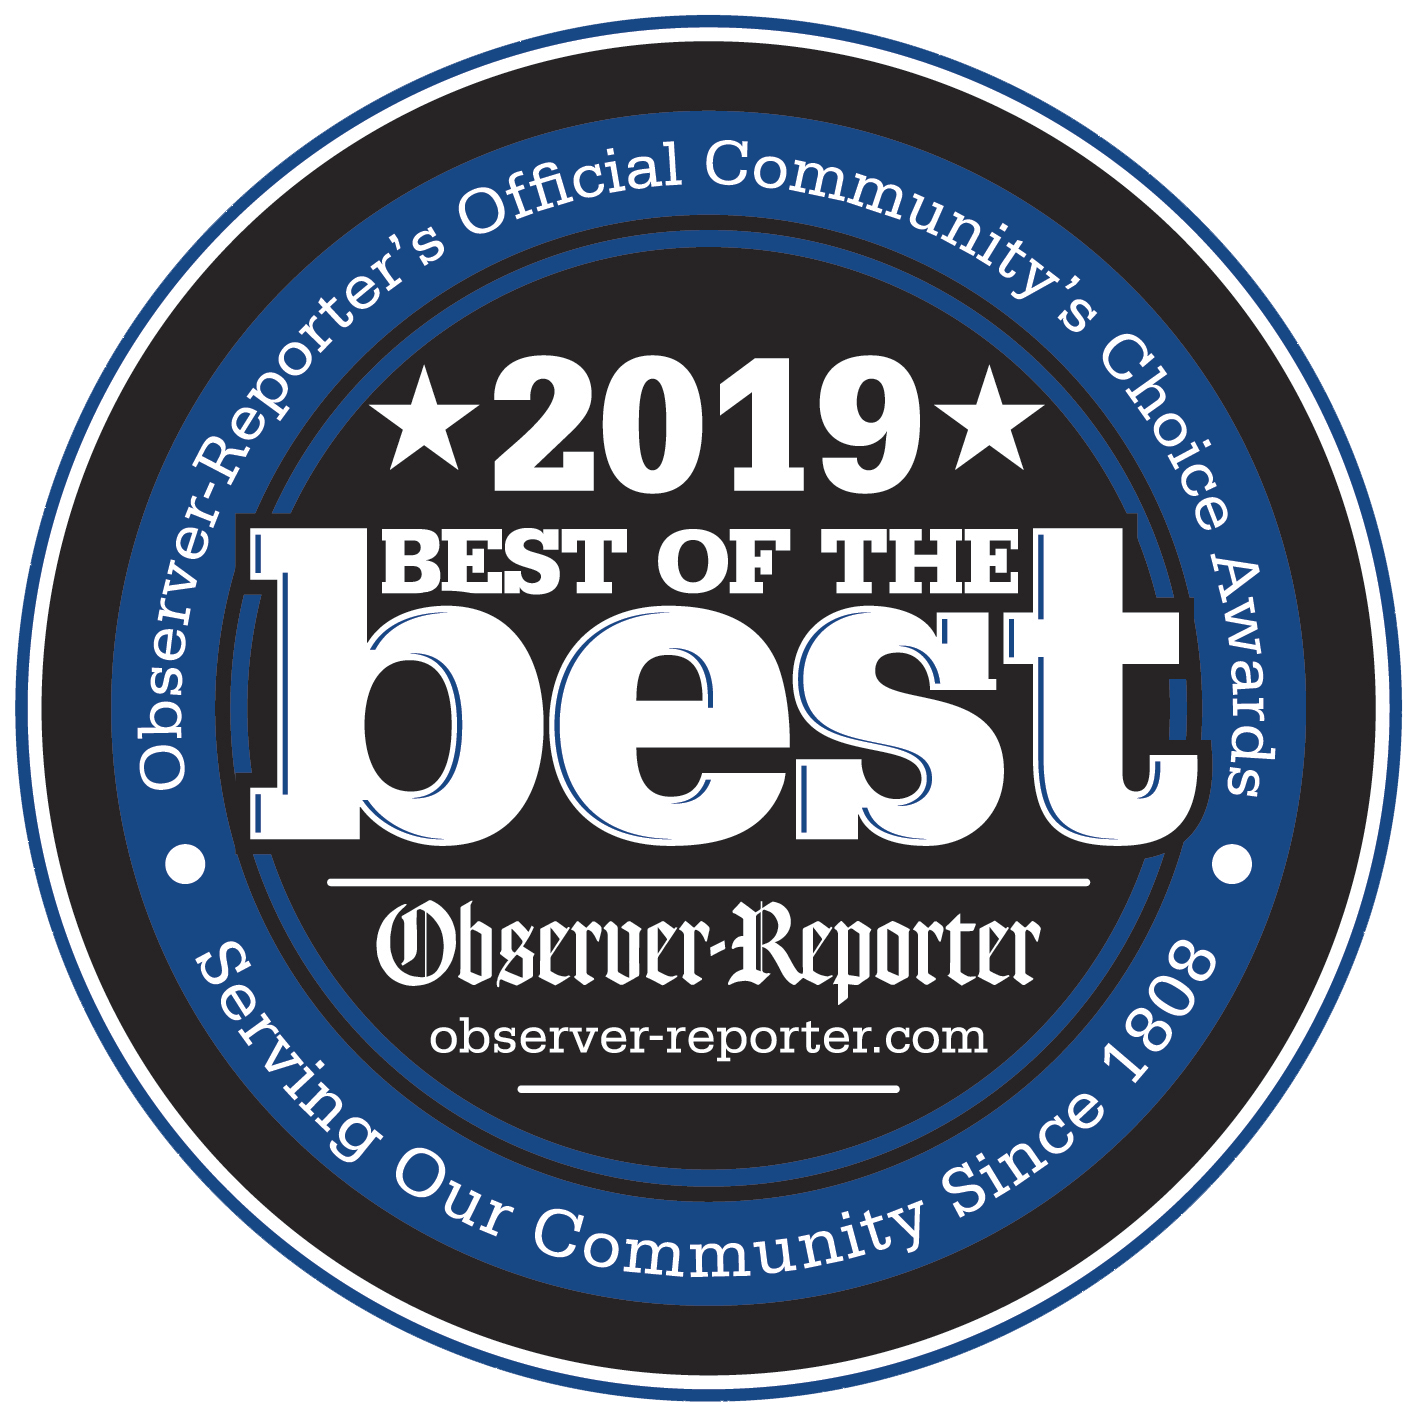 We are happy to announce we have been voted the best of the best in swimming pool installers in the Mon Valley for 2019!